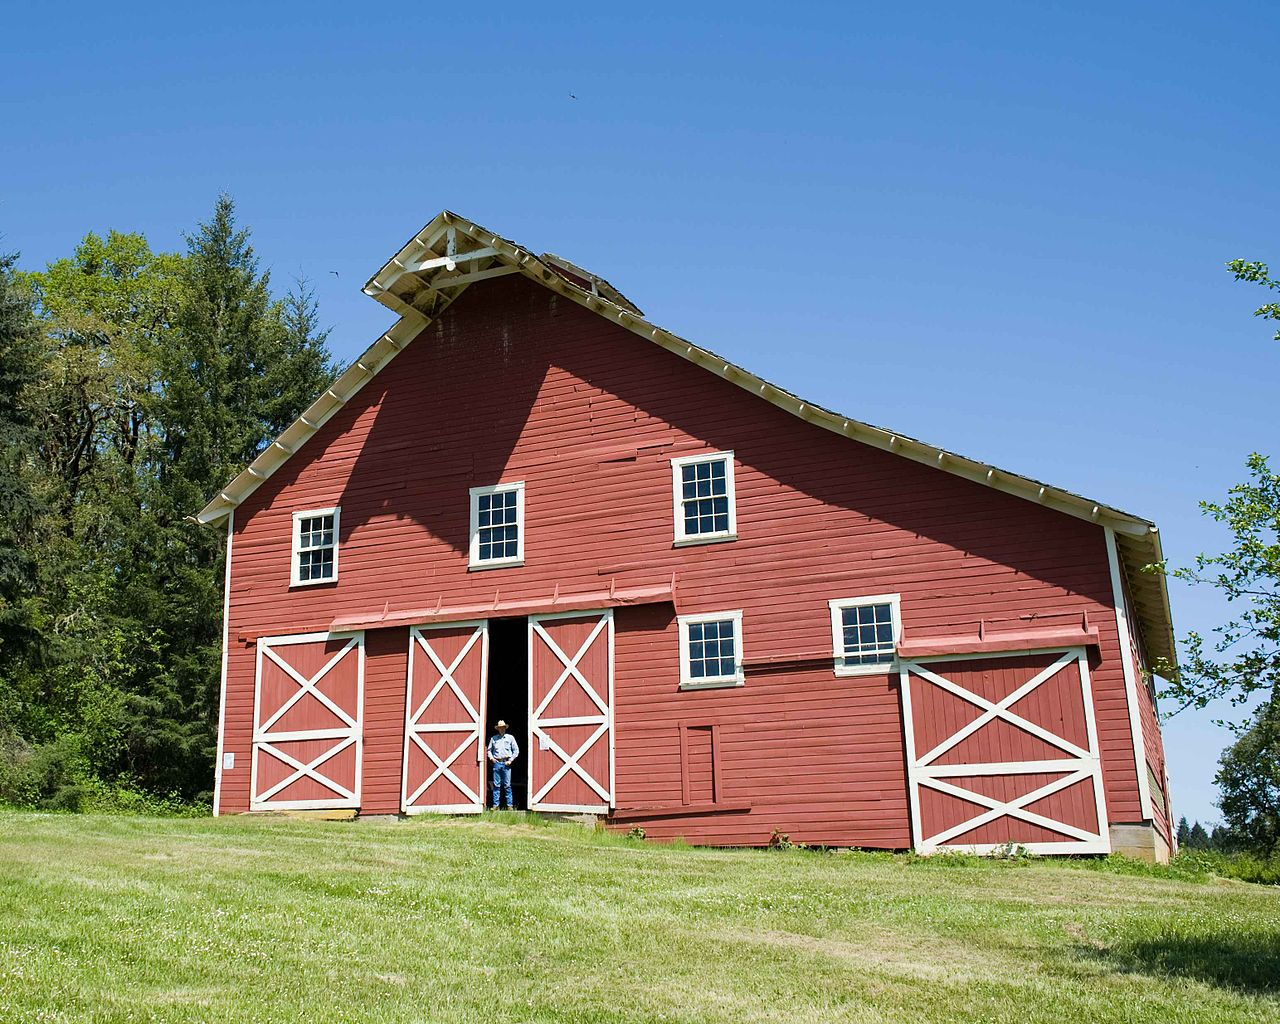 File:Nice Red Barn.jpg